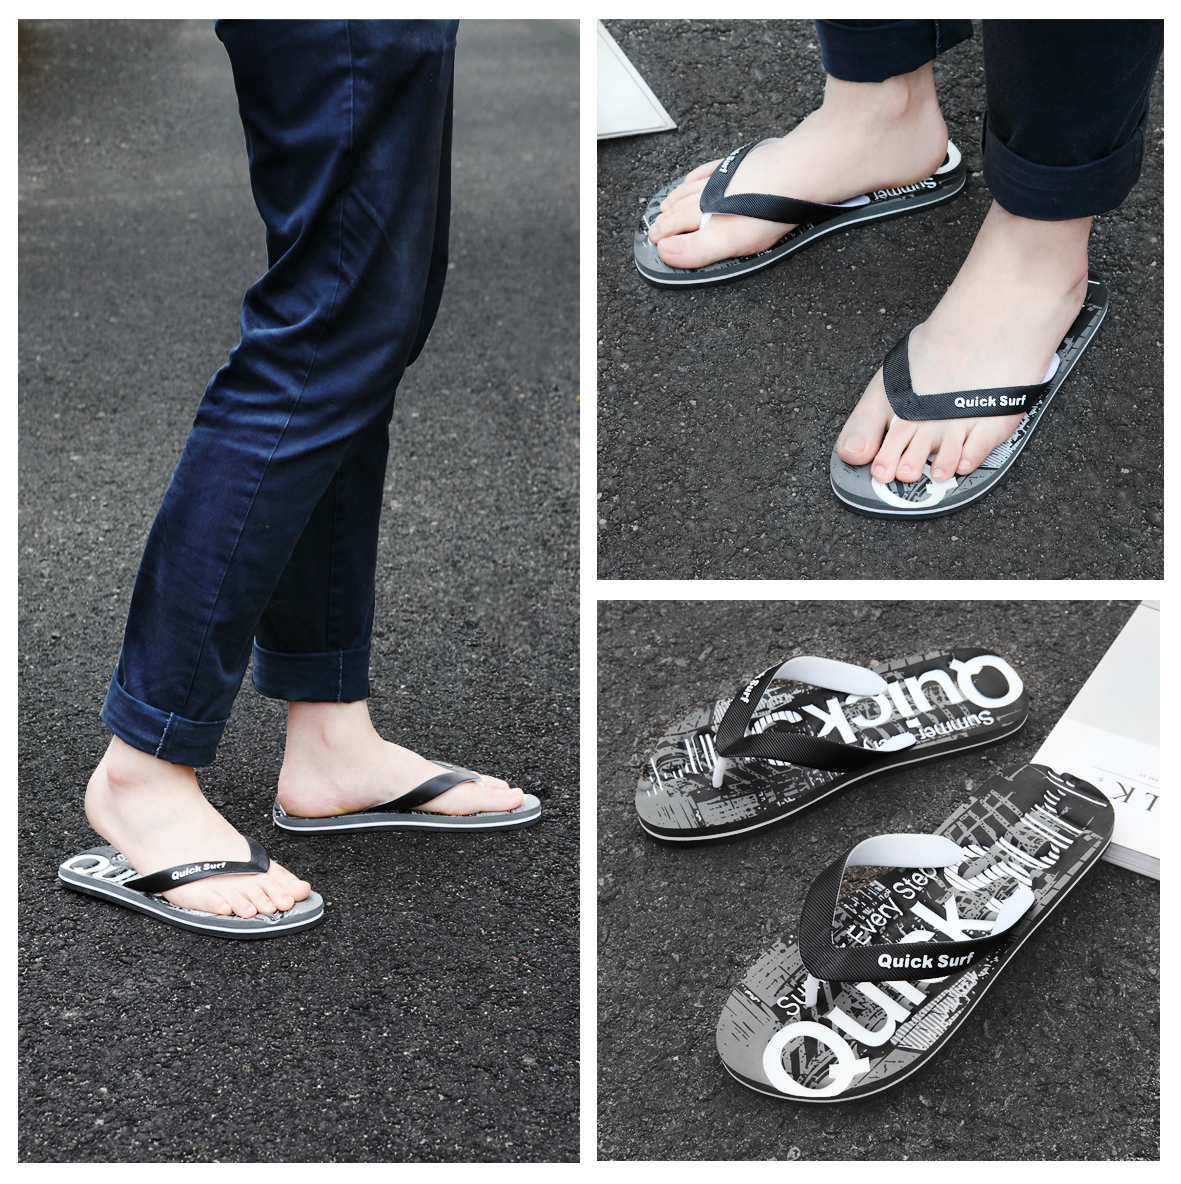 086106f521a9 2019 new flip-flops men s summer fashion wear tide outdoor personality feet  non-slip beach sandals and slippers men